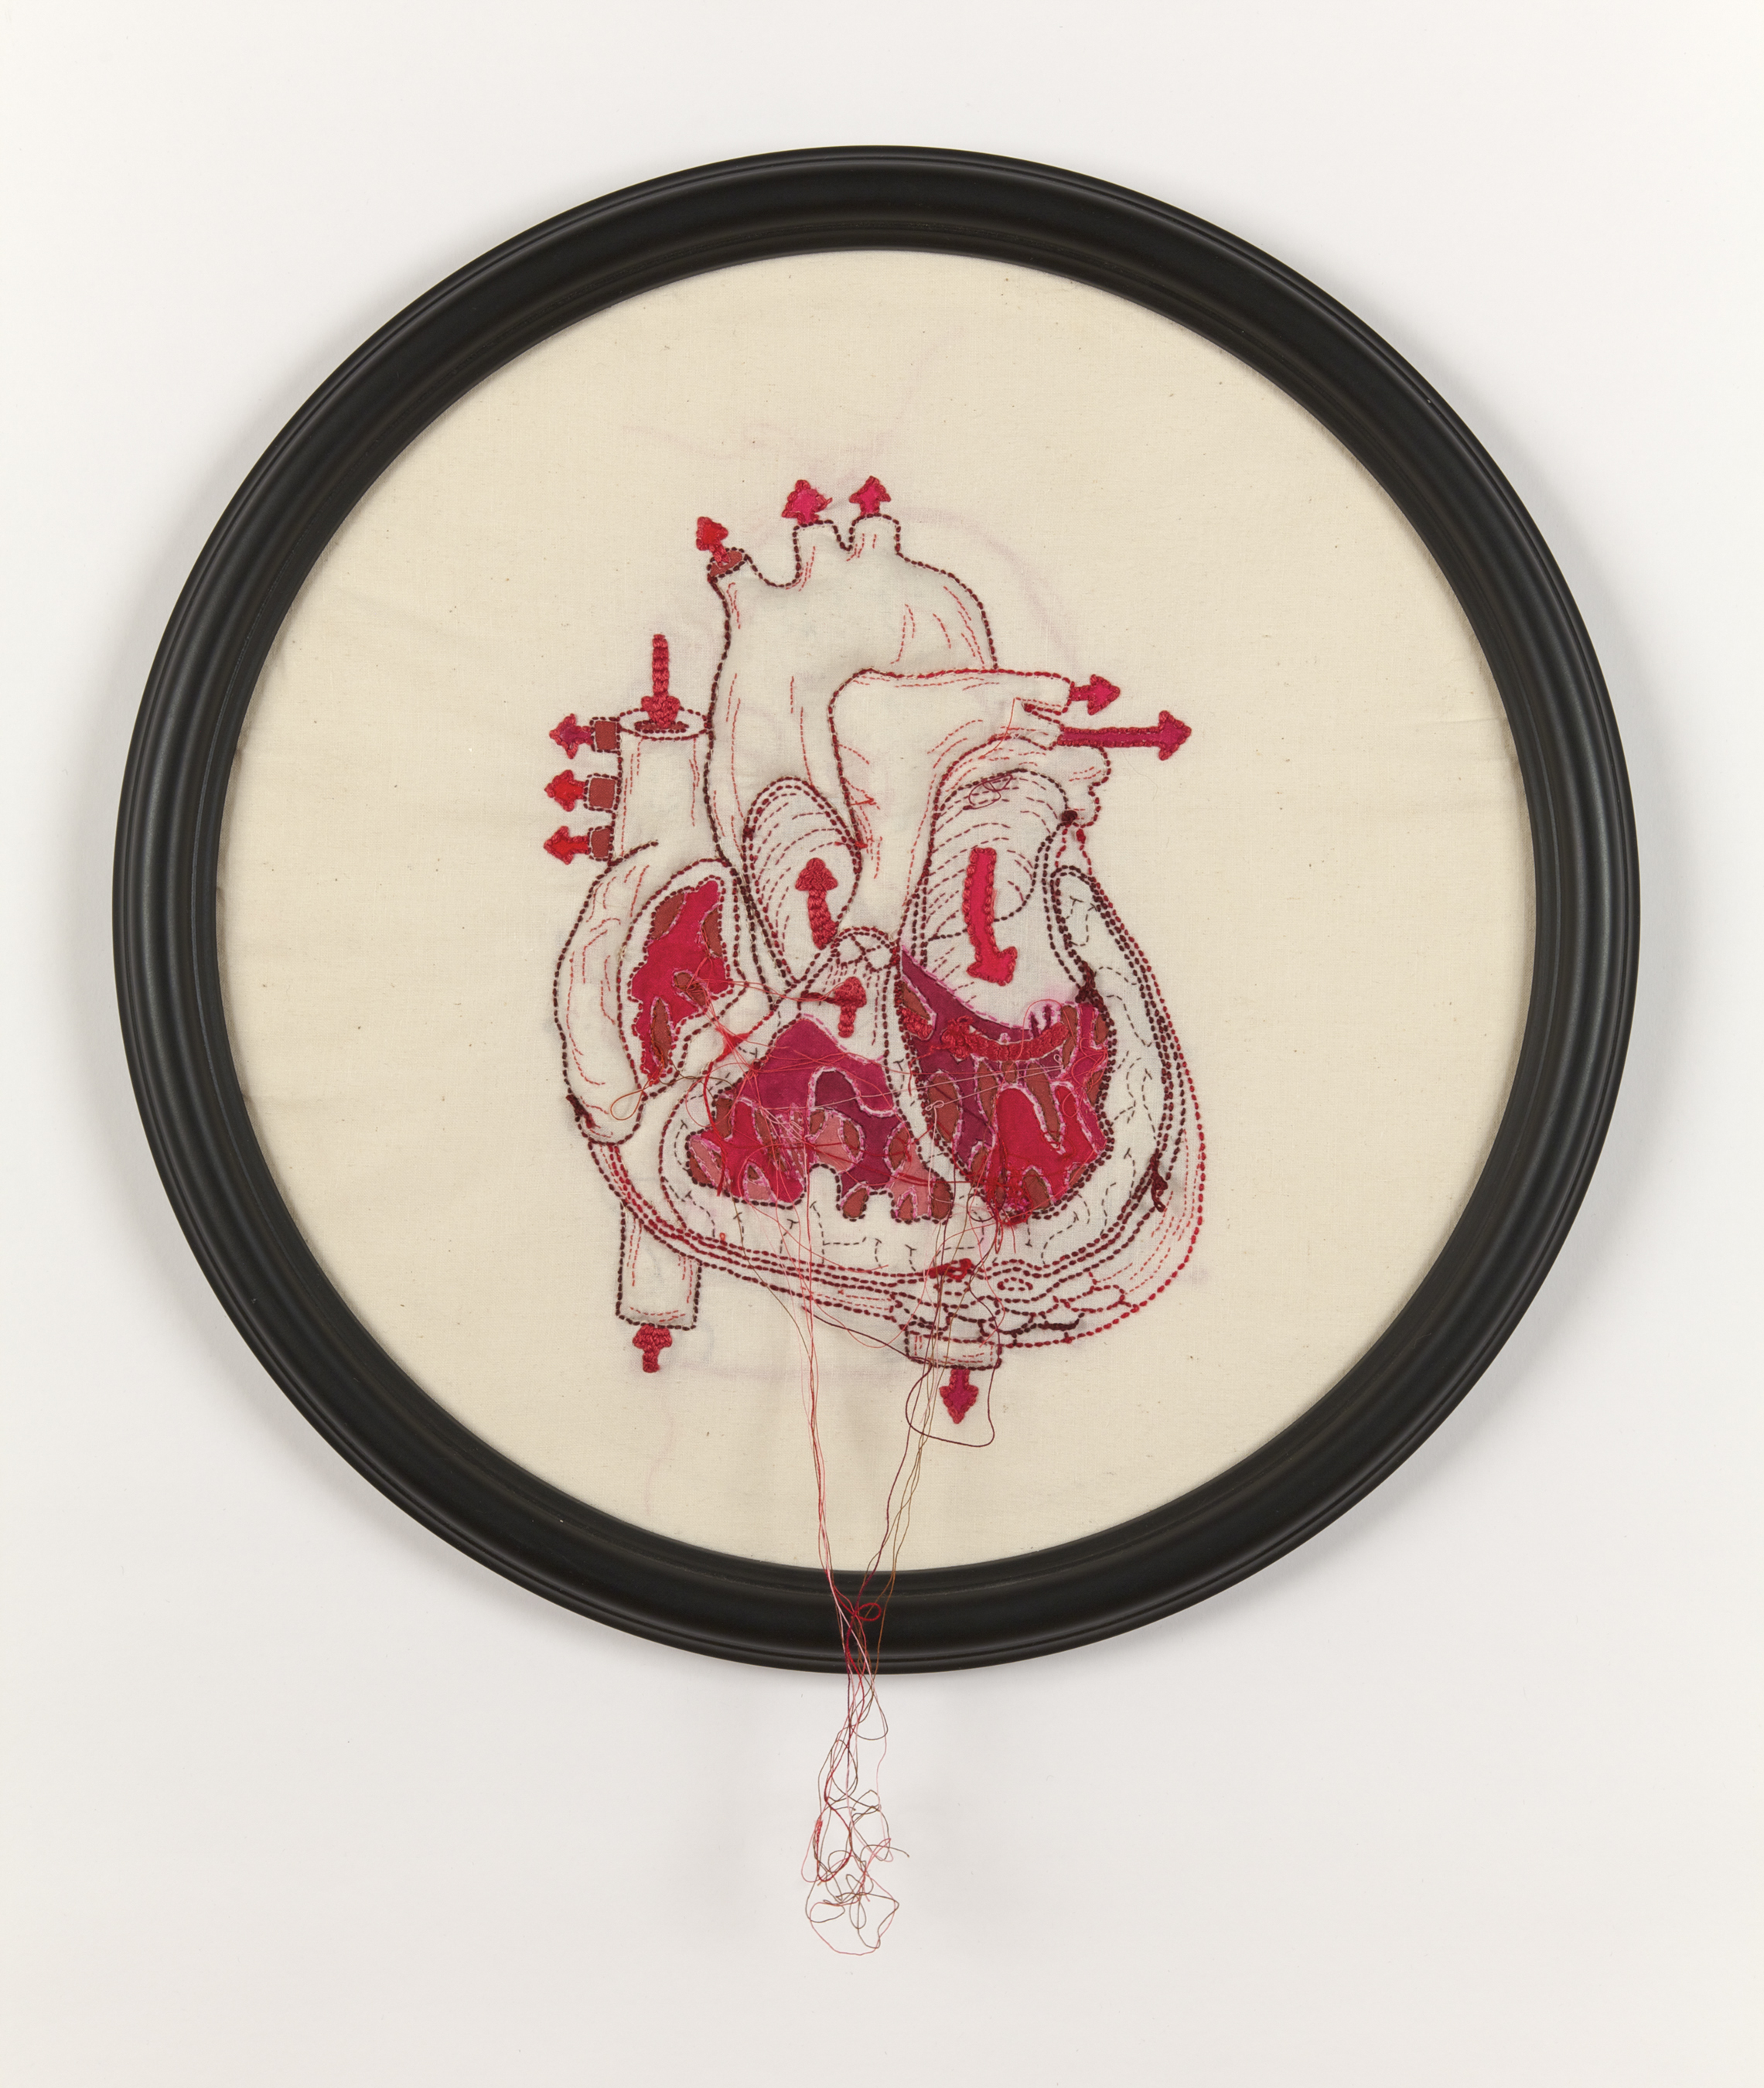 """Megan Canning,  Cor , 2012. Hand-embroidered cotton with acrylic on cotton. 14 1/4"""" diameter. Private collection."""